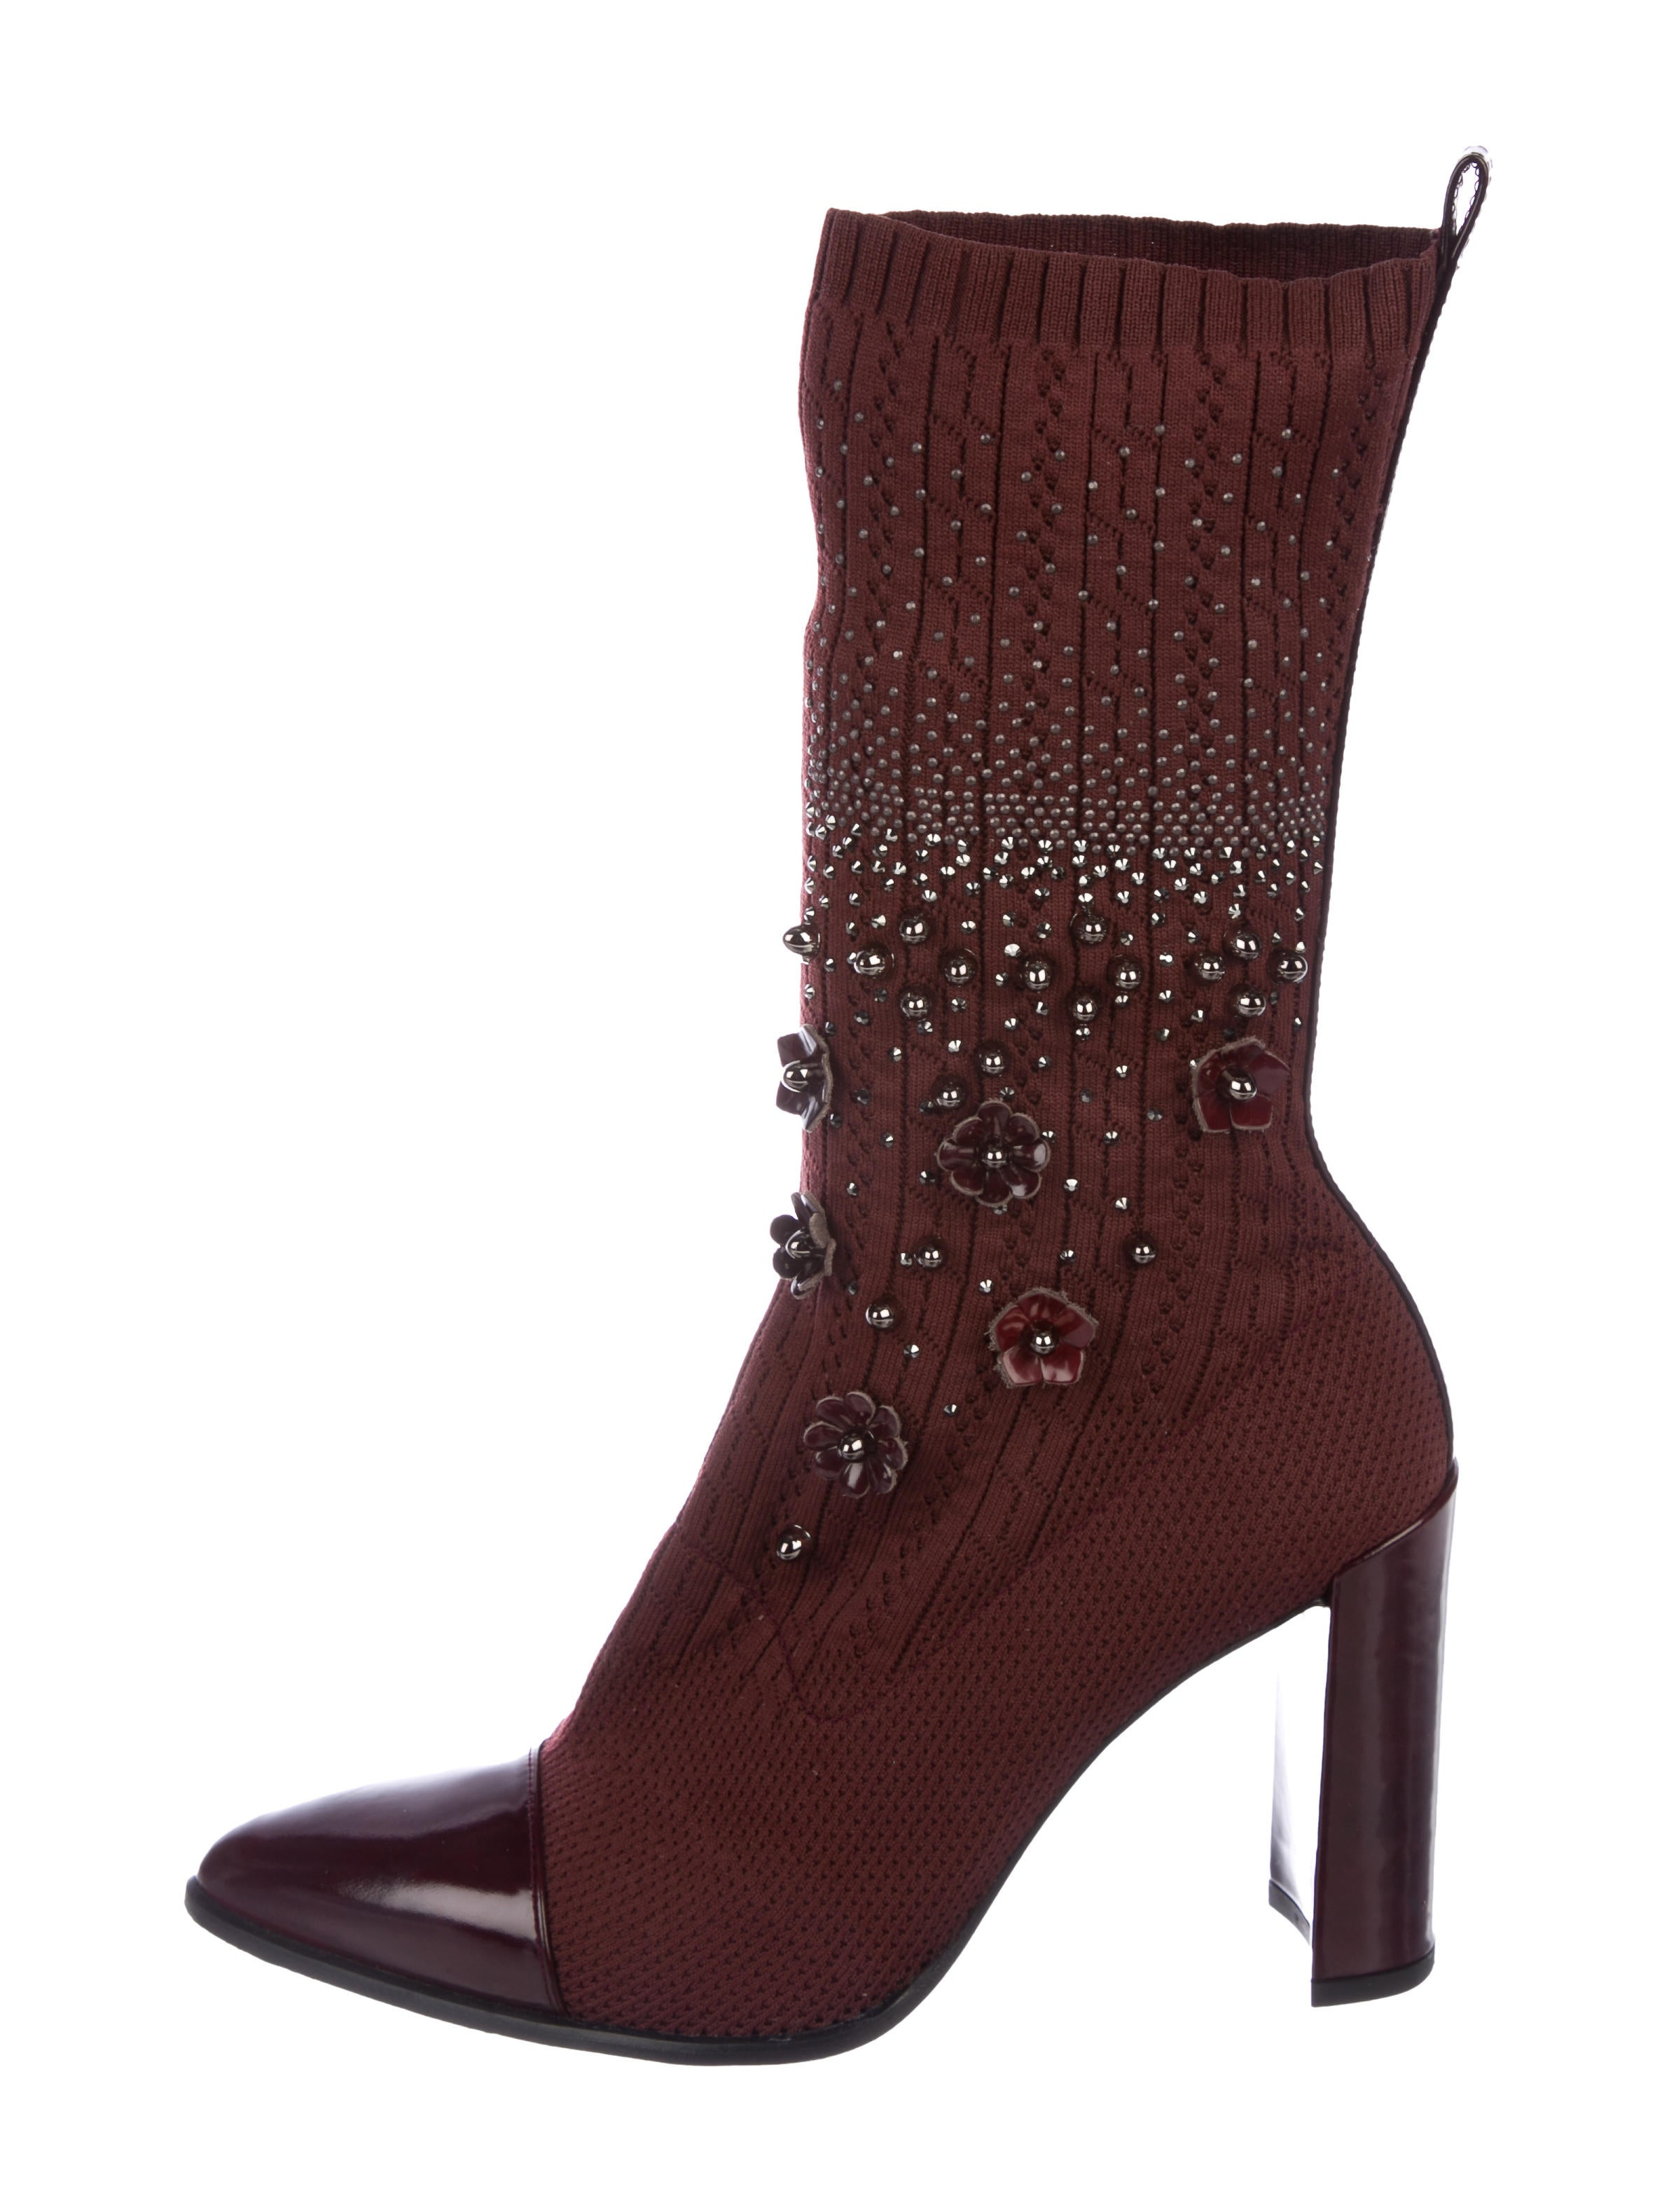 Stuart Weitzman 2018 Sock Hop Mid-Calf Boots recommend online 2014 newest cheap price brand new unisex for sale cheap sale 2015 authentic cheap price 19se70hMV